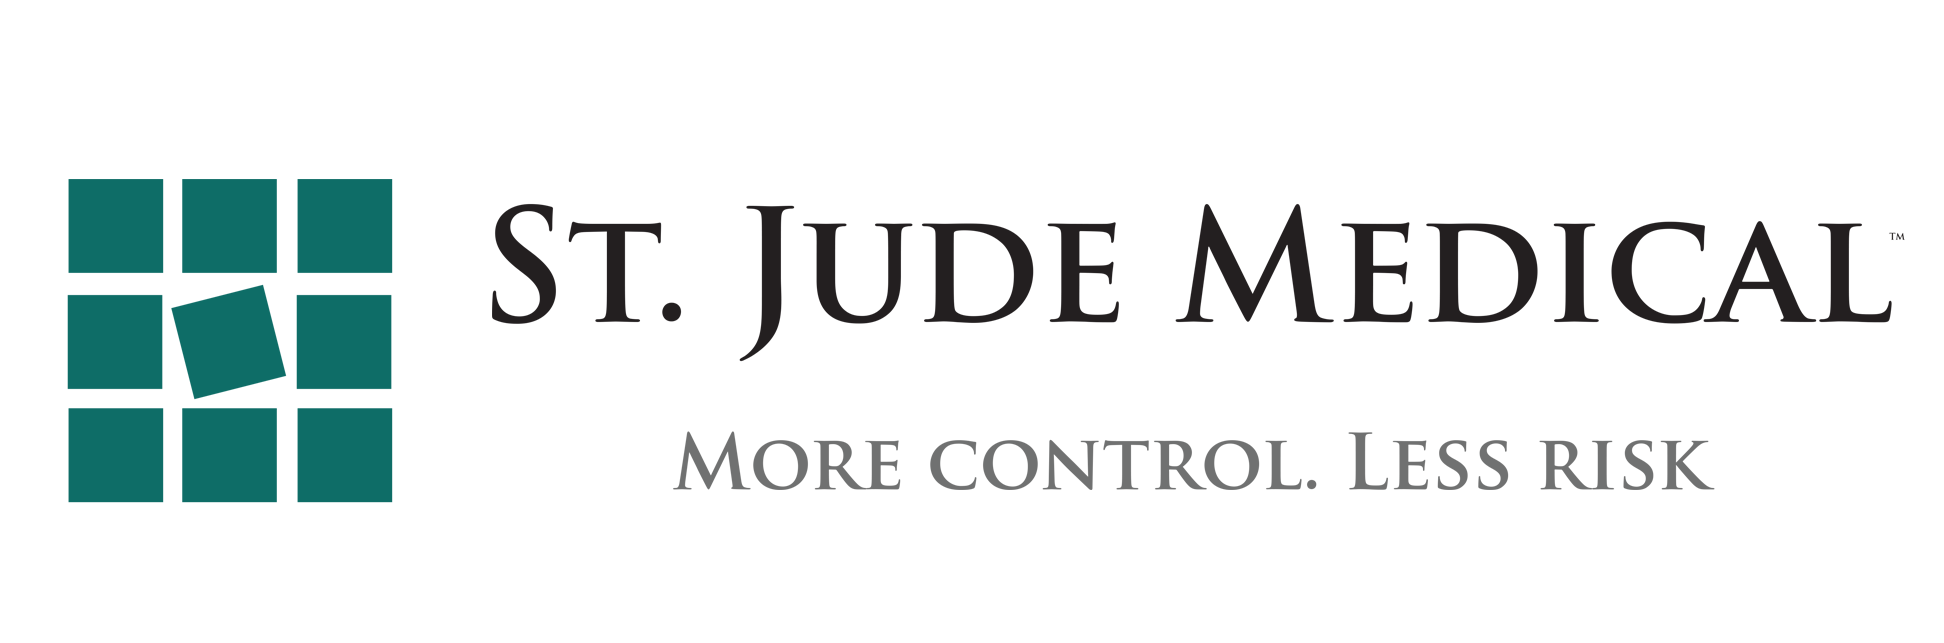 St Jude Medical Brand. More than just a logo.